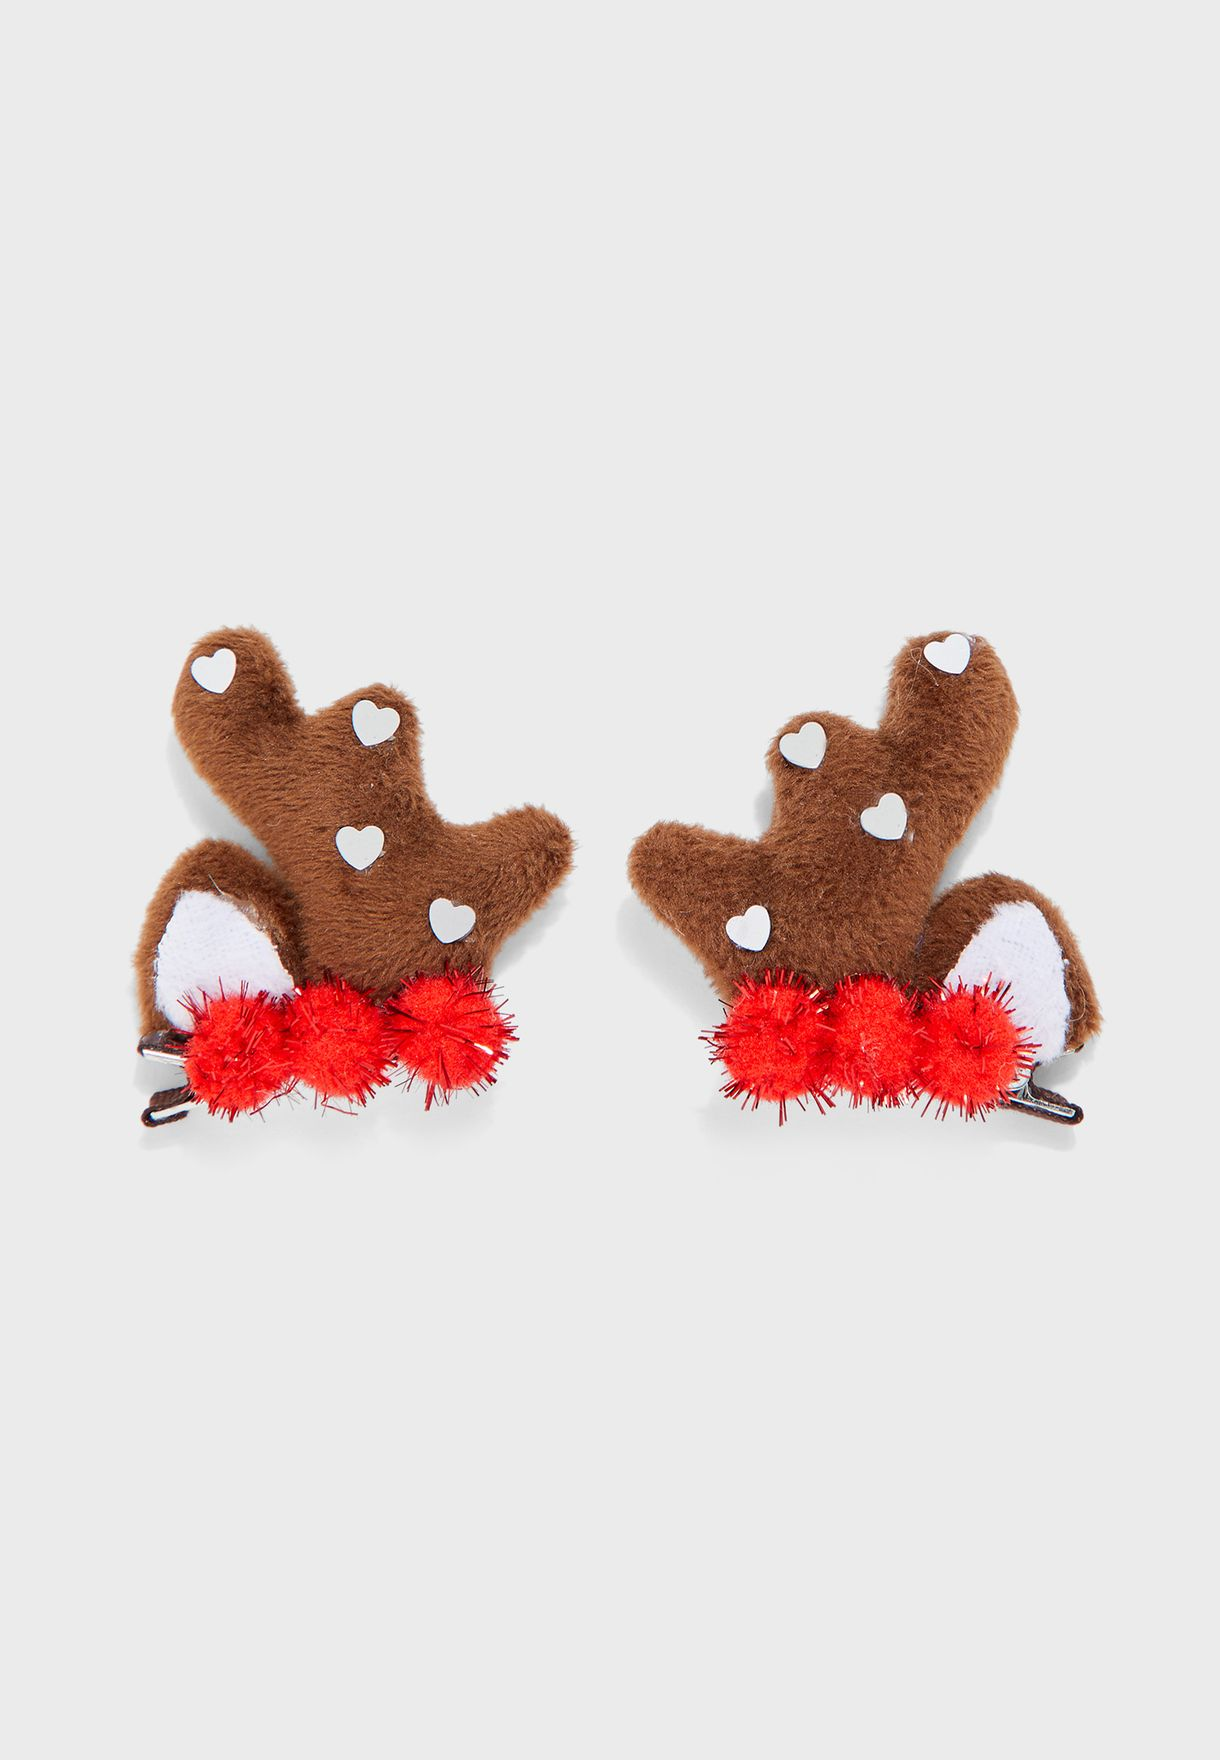 2 Piece Embellished Gator Hair Clips